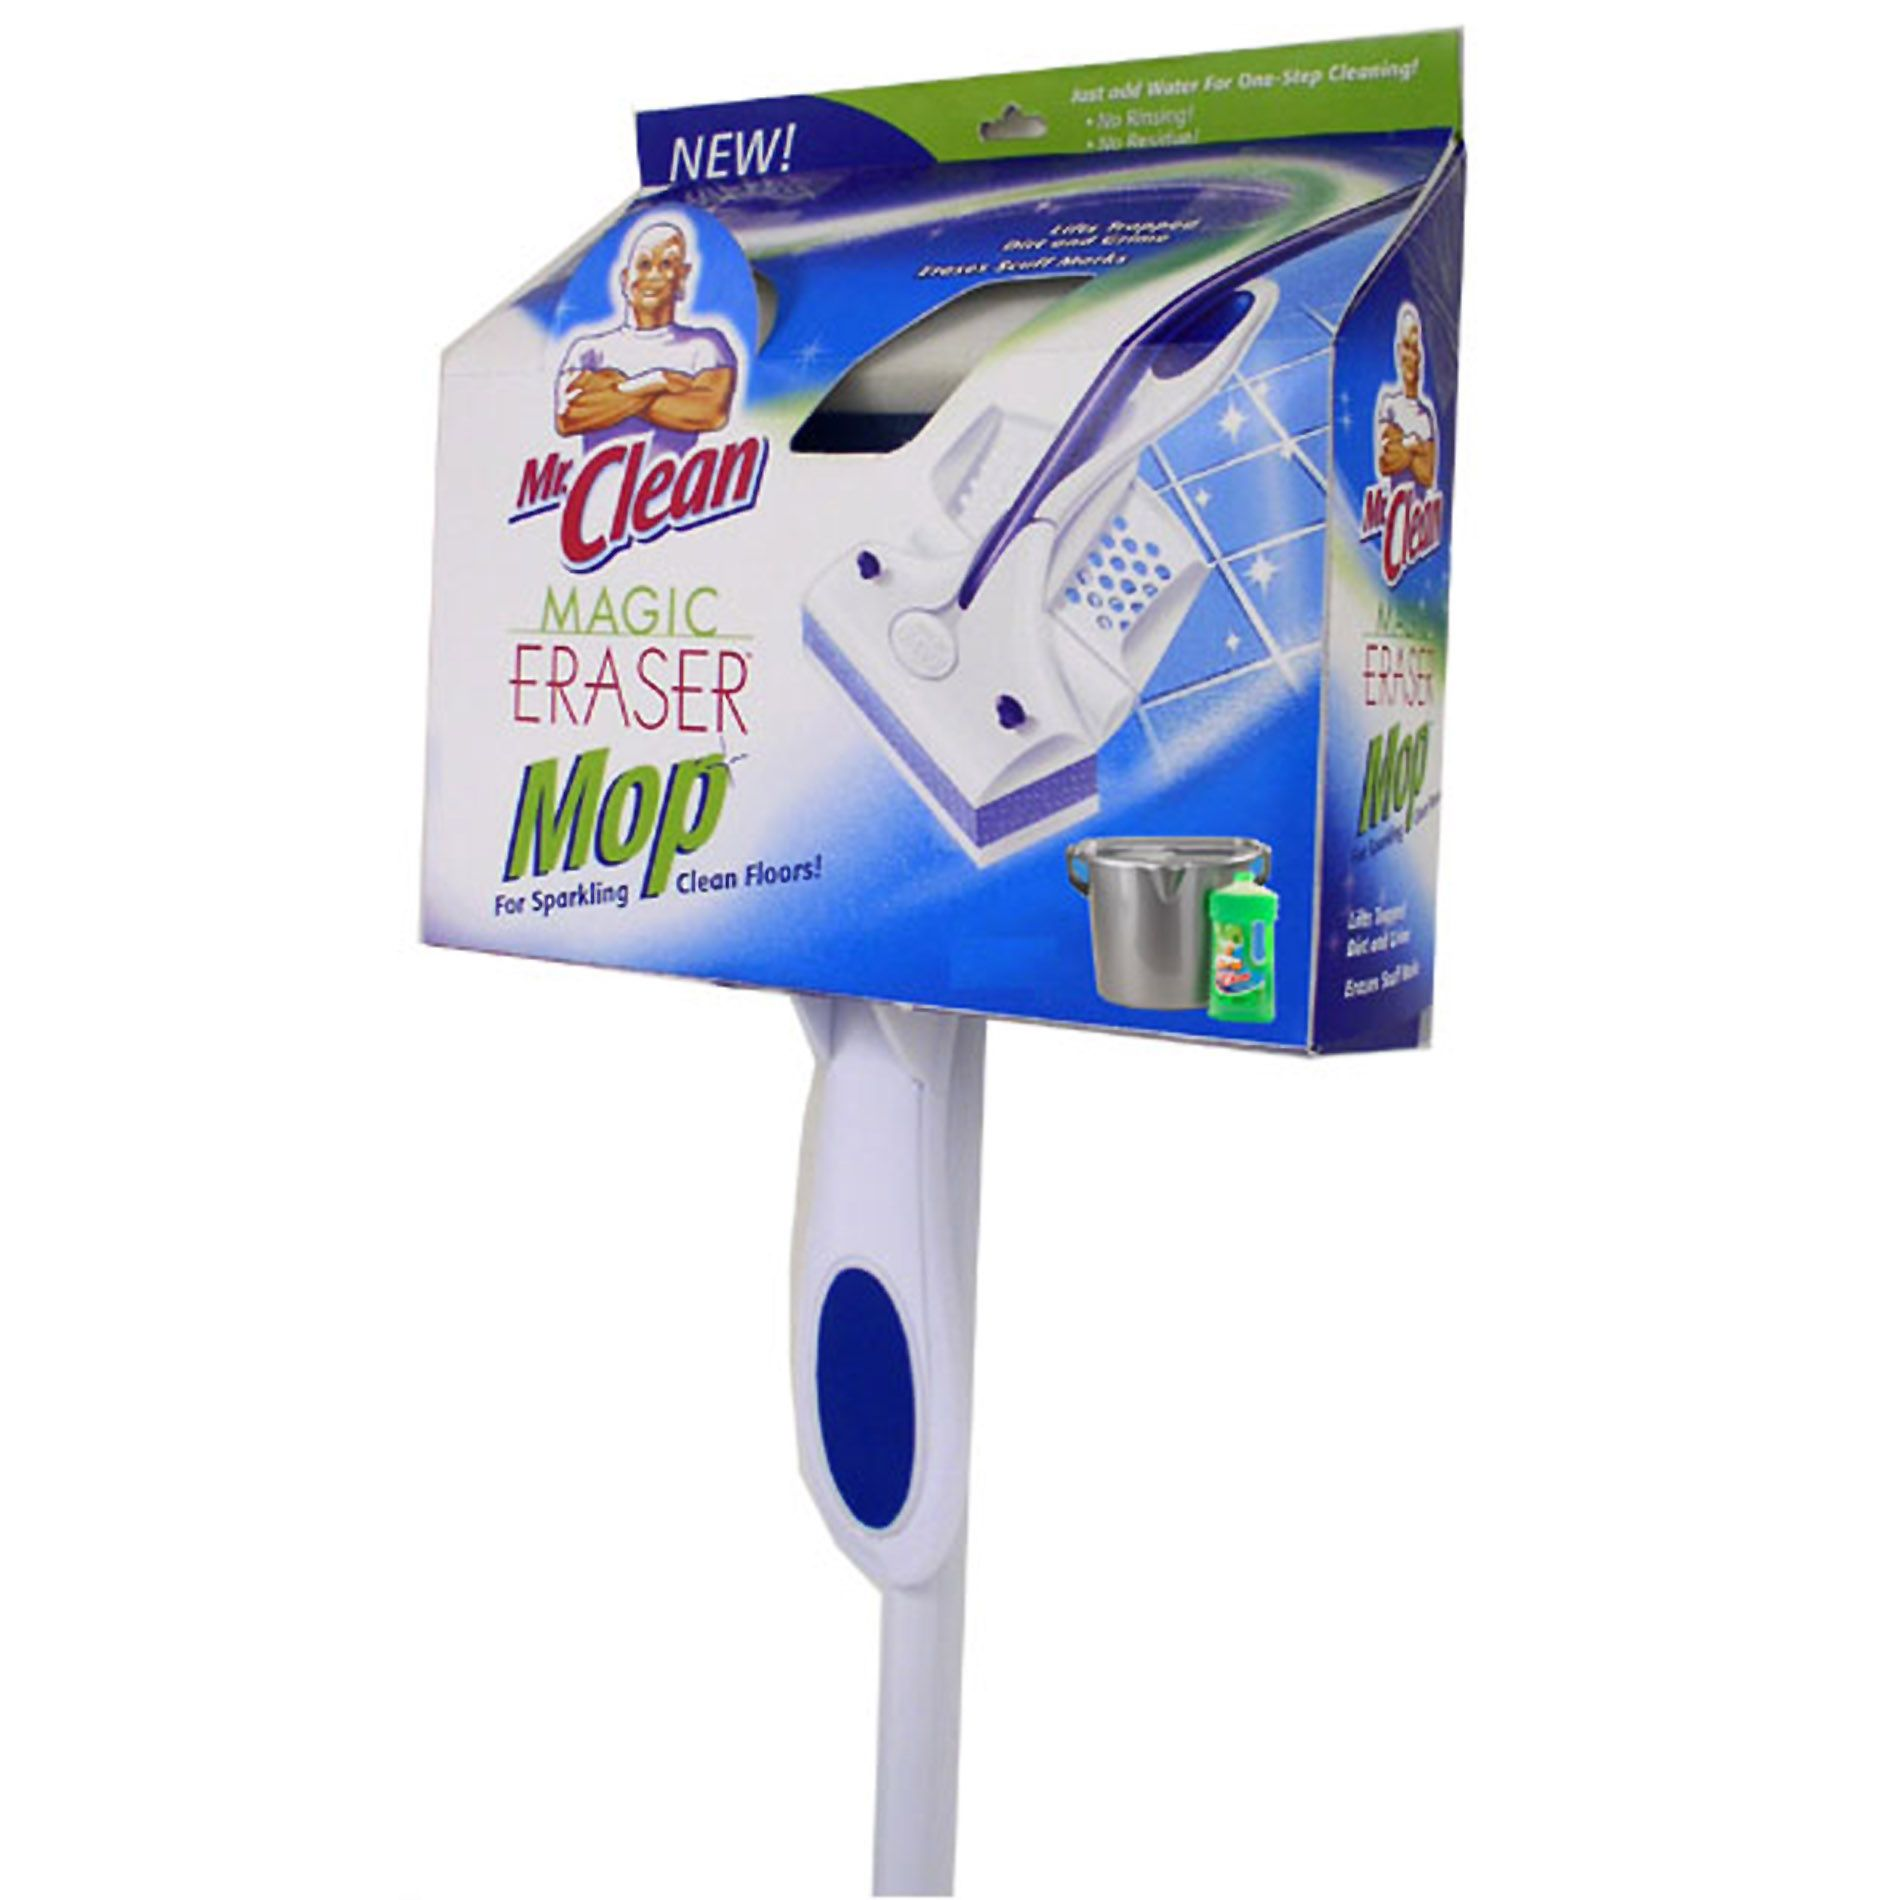 Clean Magic Eraser Mop - Food & Grocery Cleaning Supplies Brooms Mops Brushes